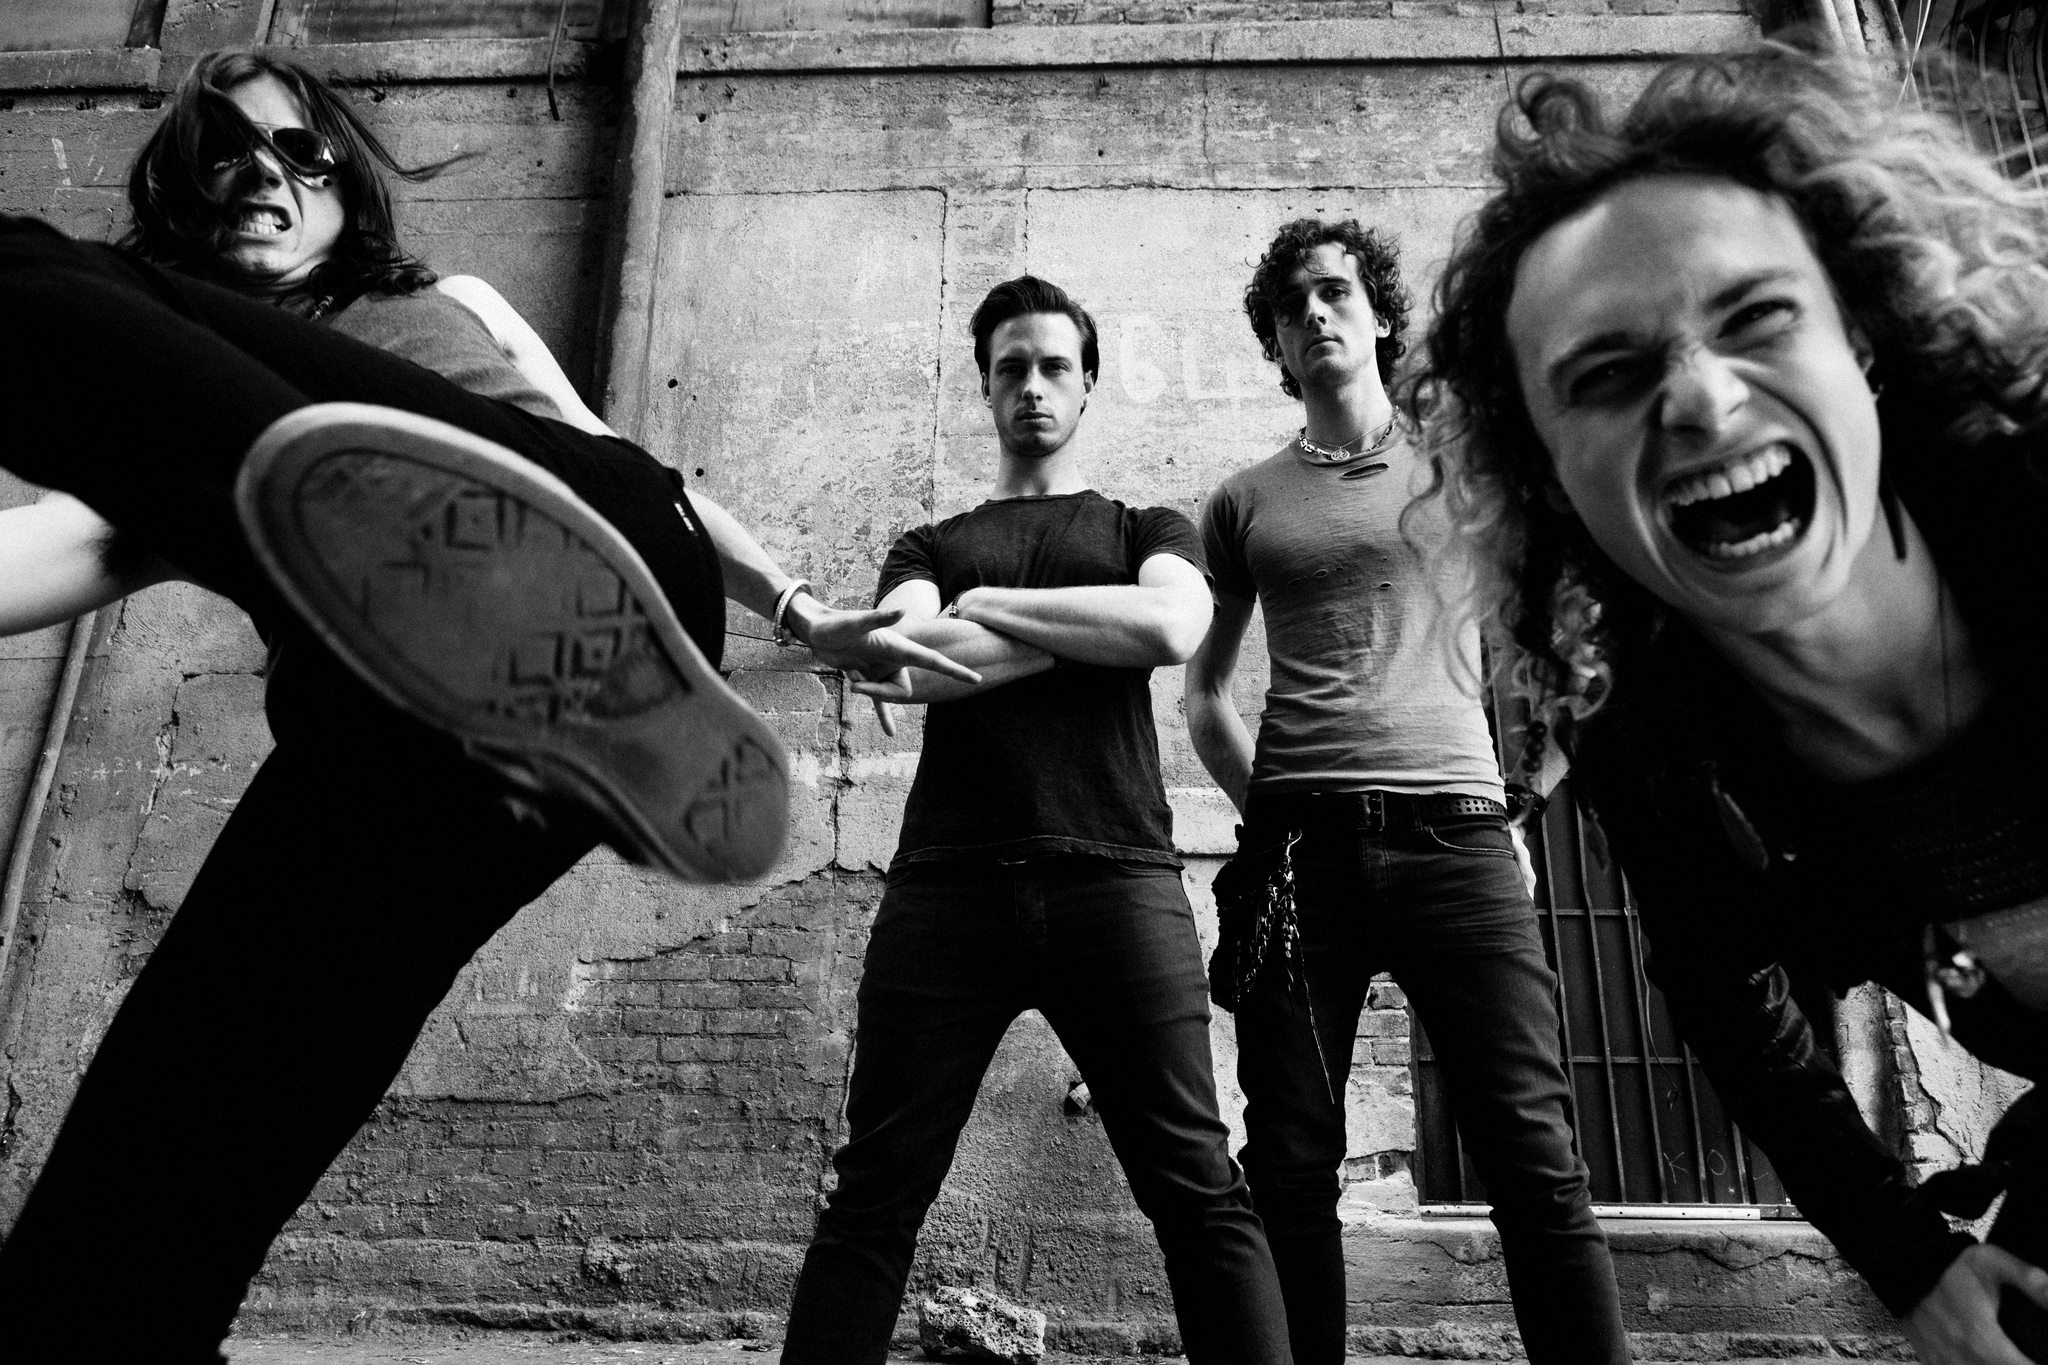 heaven s basement to perform on snocore tour band back